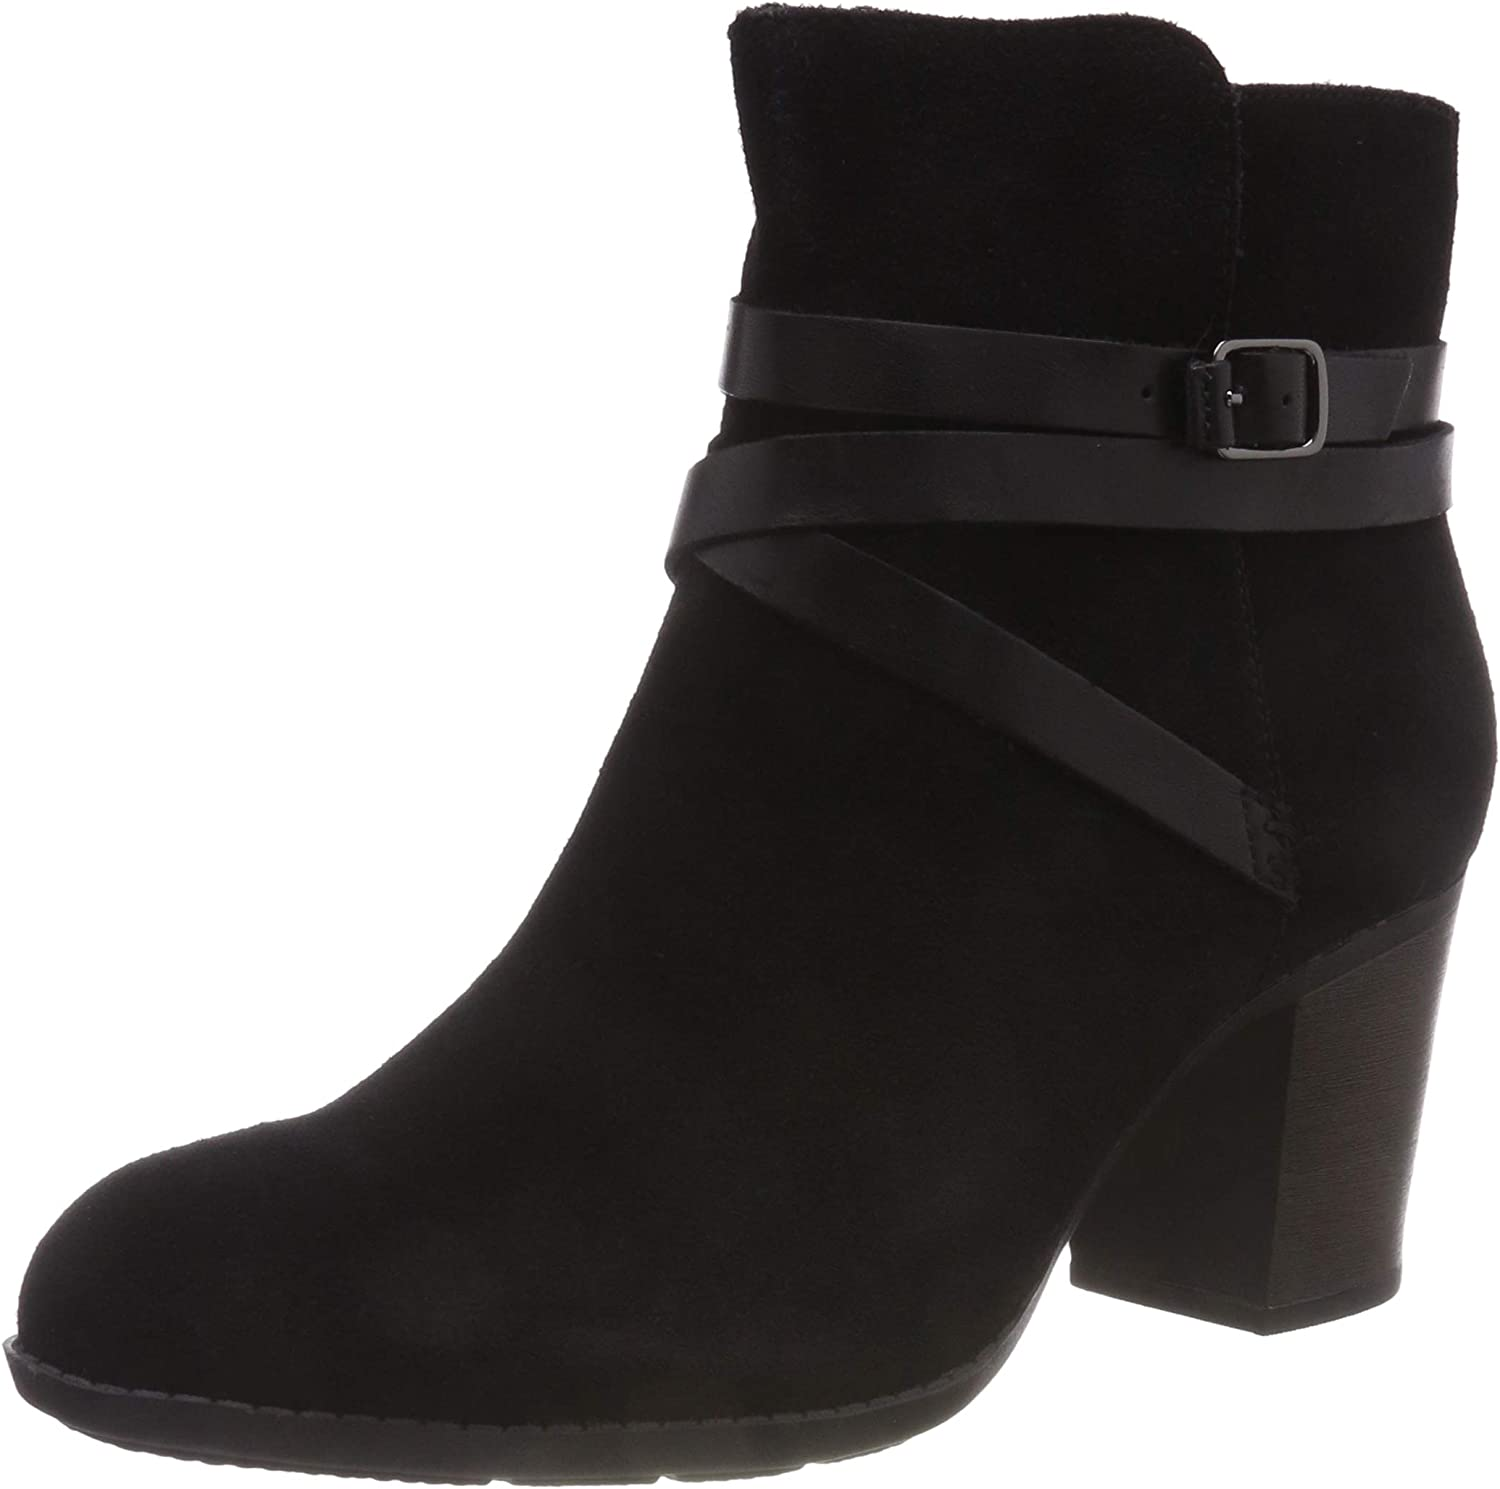 Clarks - Enfield Coco - 261368874